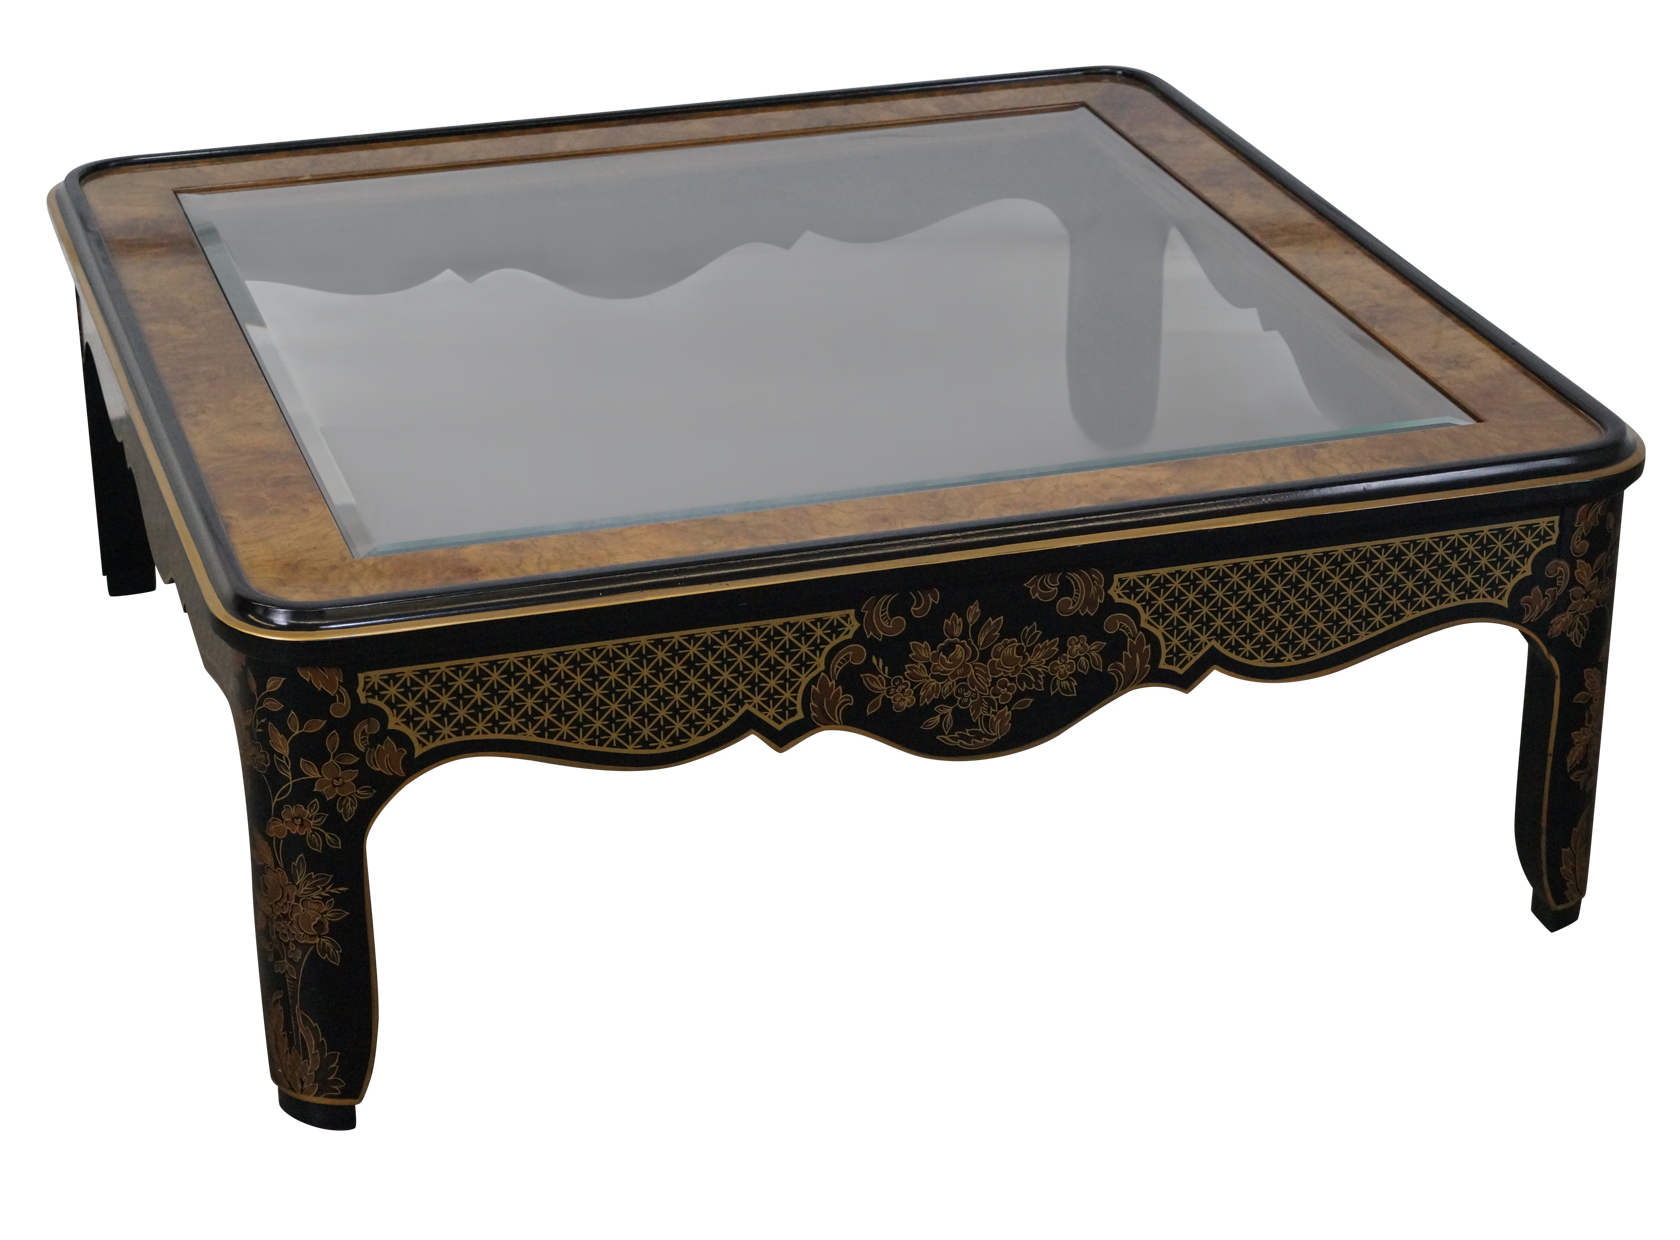 Drexel Heritage Square Burl Wood Coffee Table